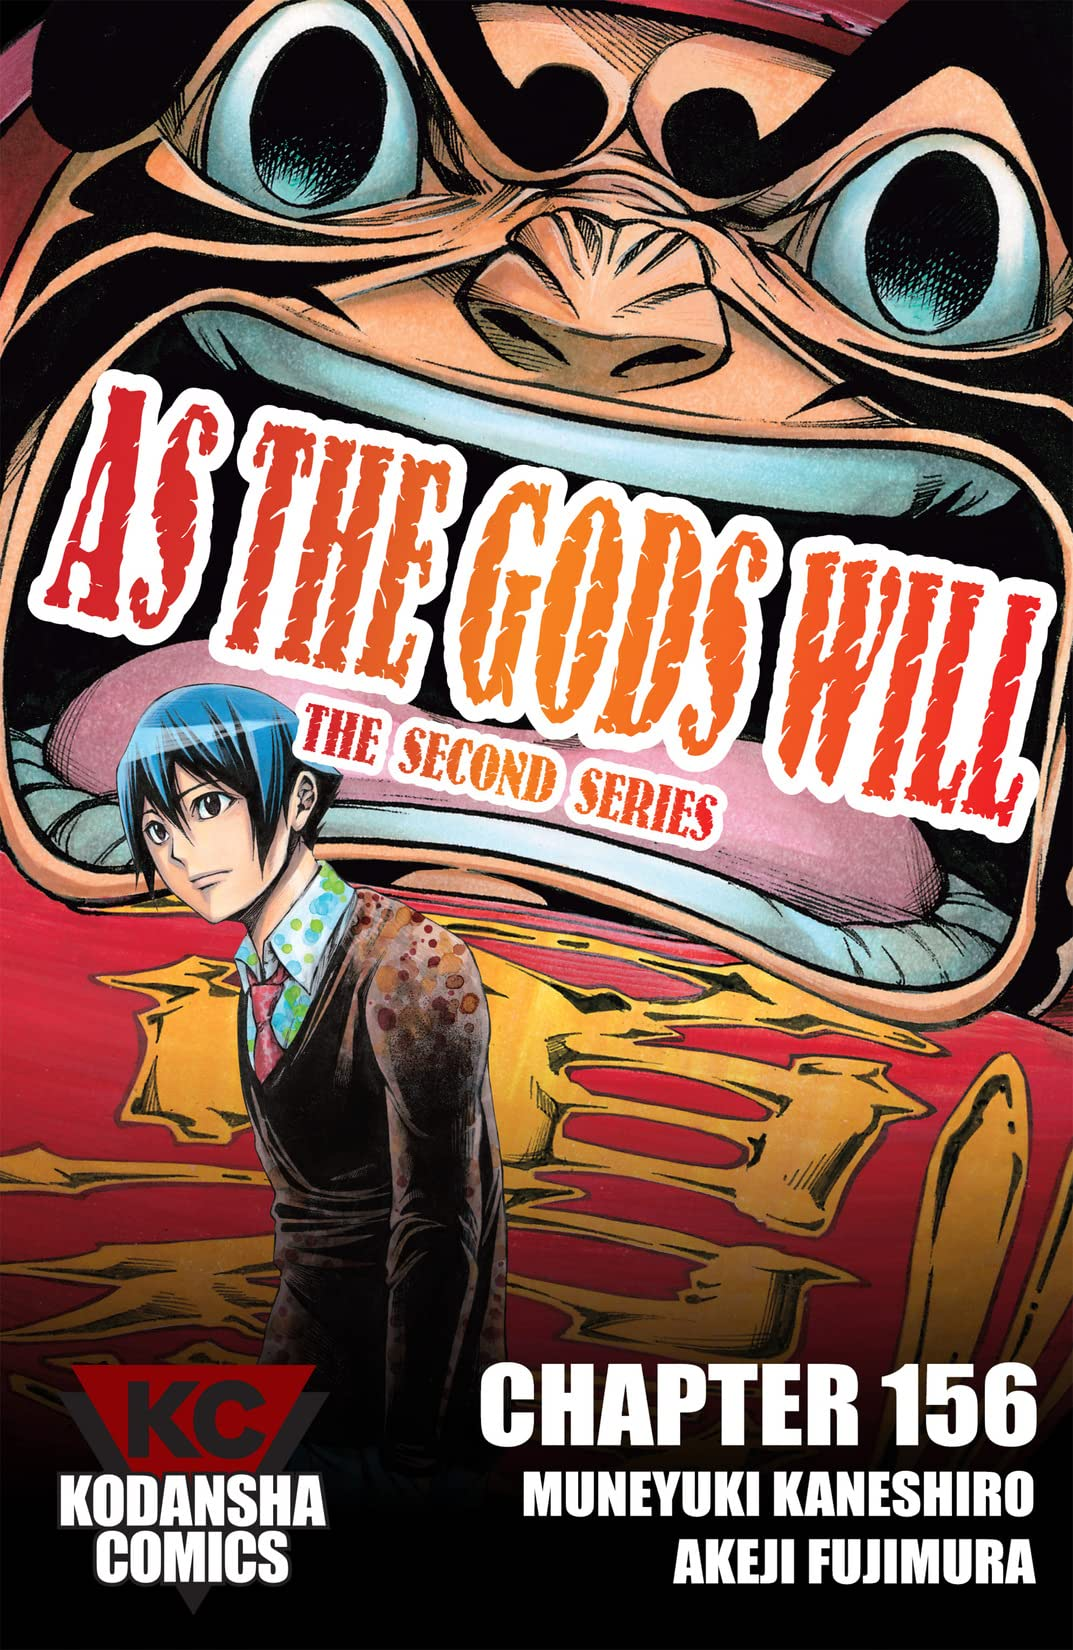 As The Gods Will: The Second Series #156